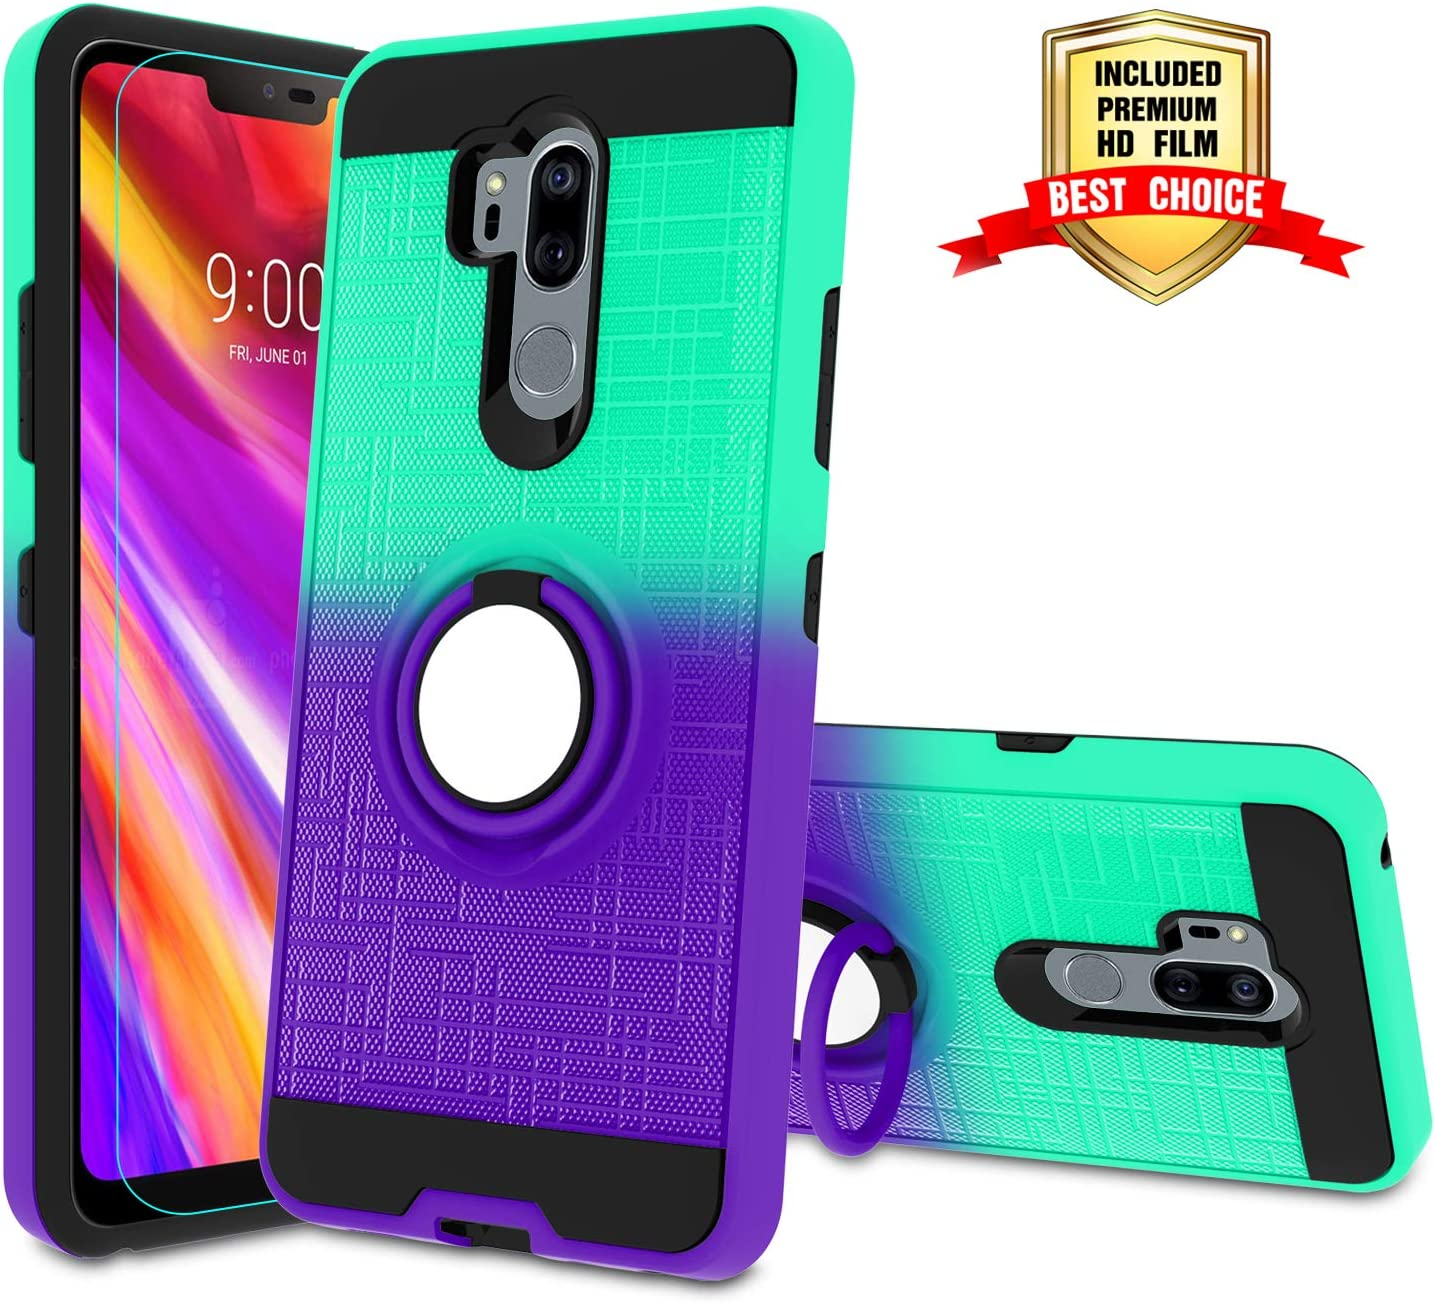 LG G7 Phone Case LG G7 ThinQ Case with HD Screen Protector,Atump 360 Degree Rotating Ring Holder Kickstand Bracket Cover Phone Case for LG G7 Mint/Purple